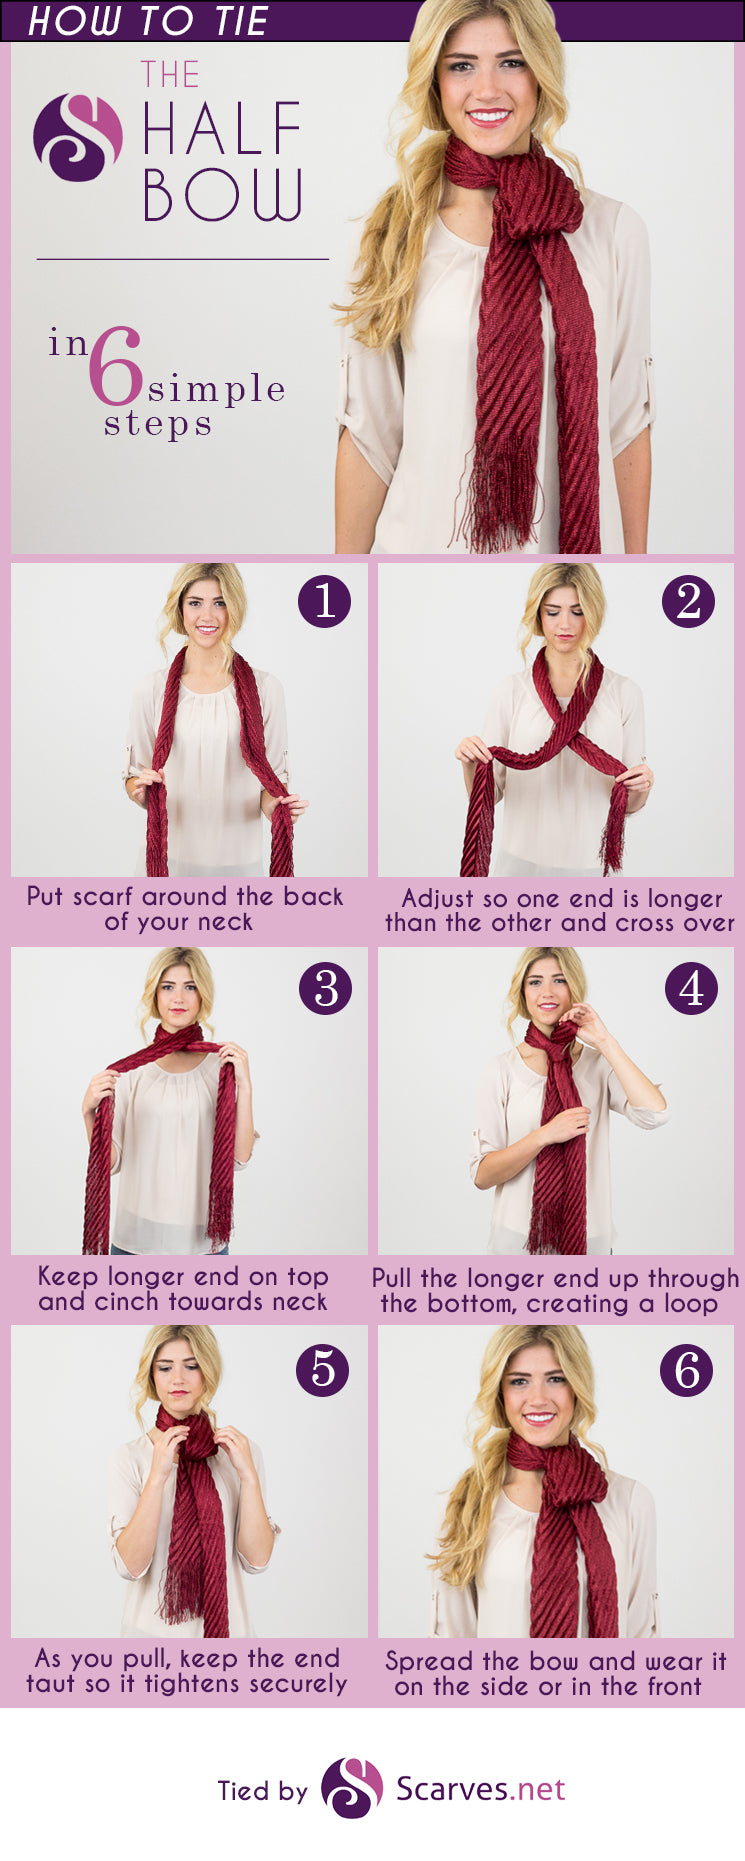 The Half Bow Knot in 6 simple steps